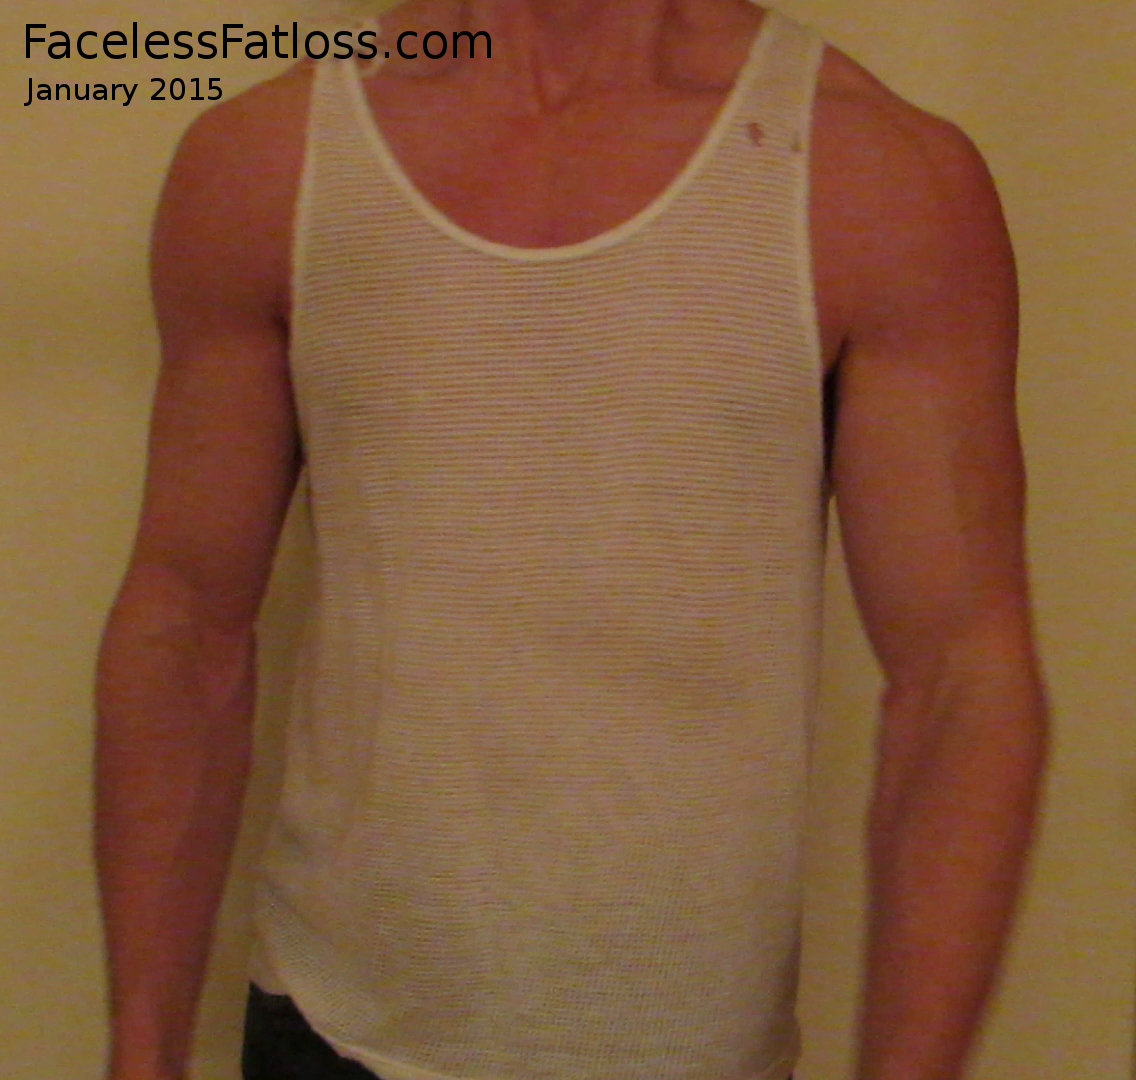 Faceless Fat Loss 2